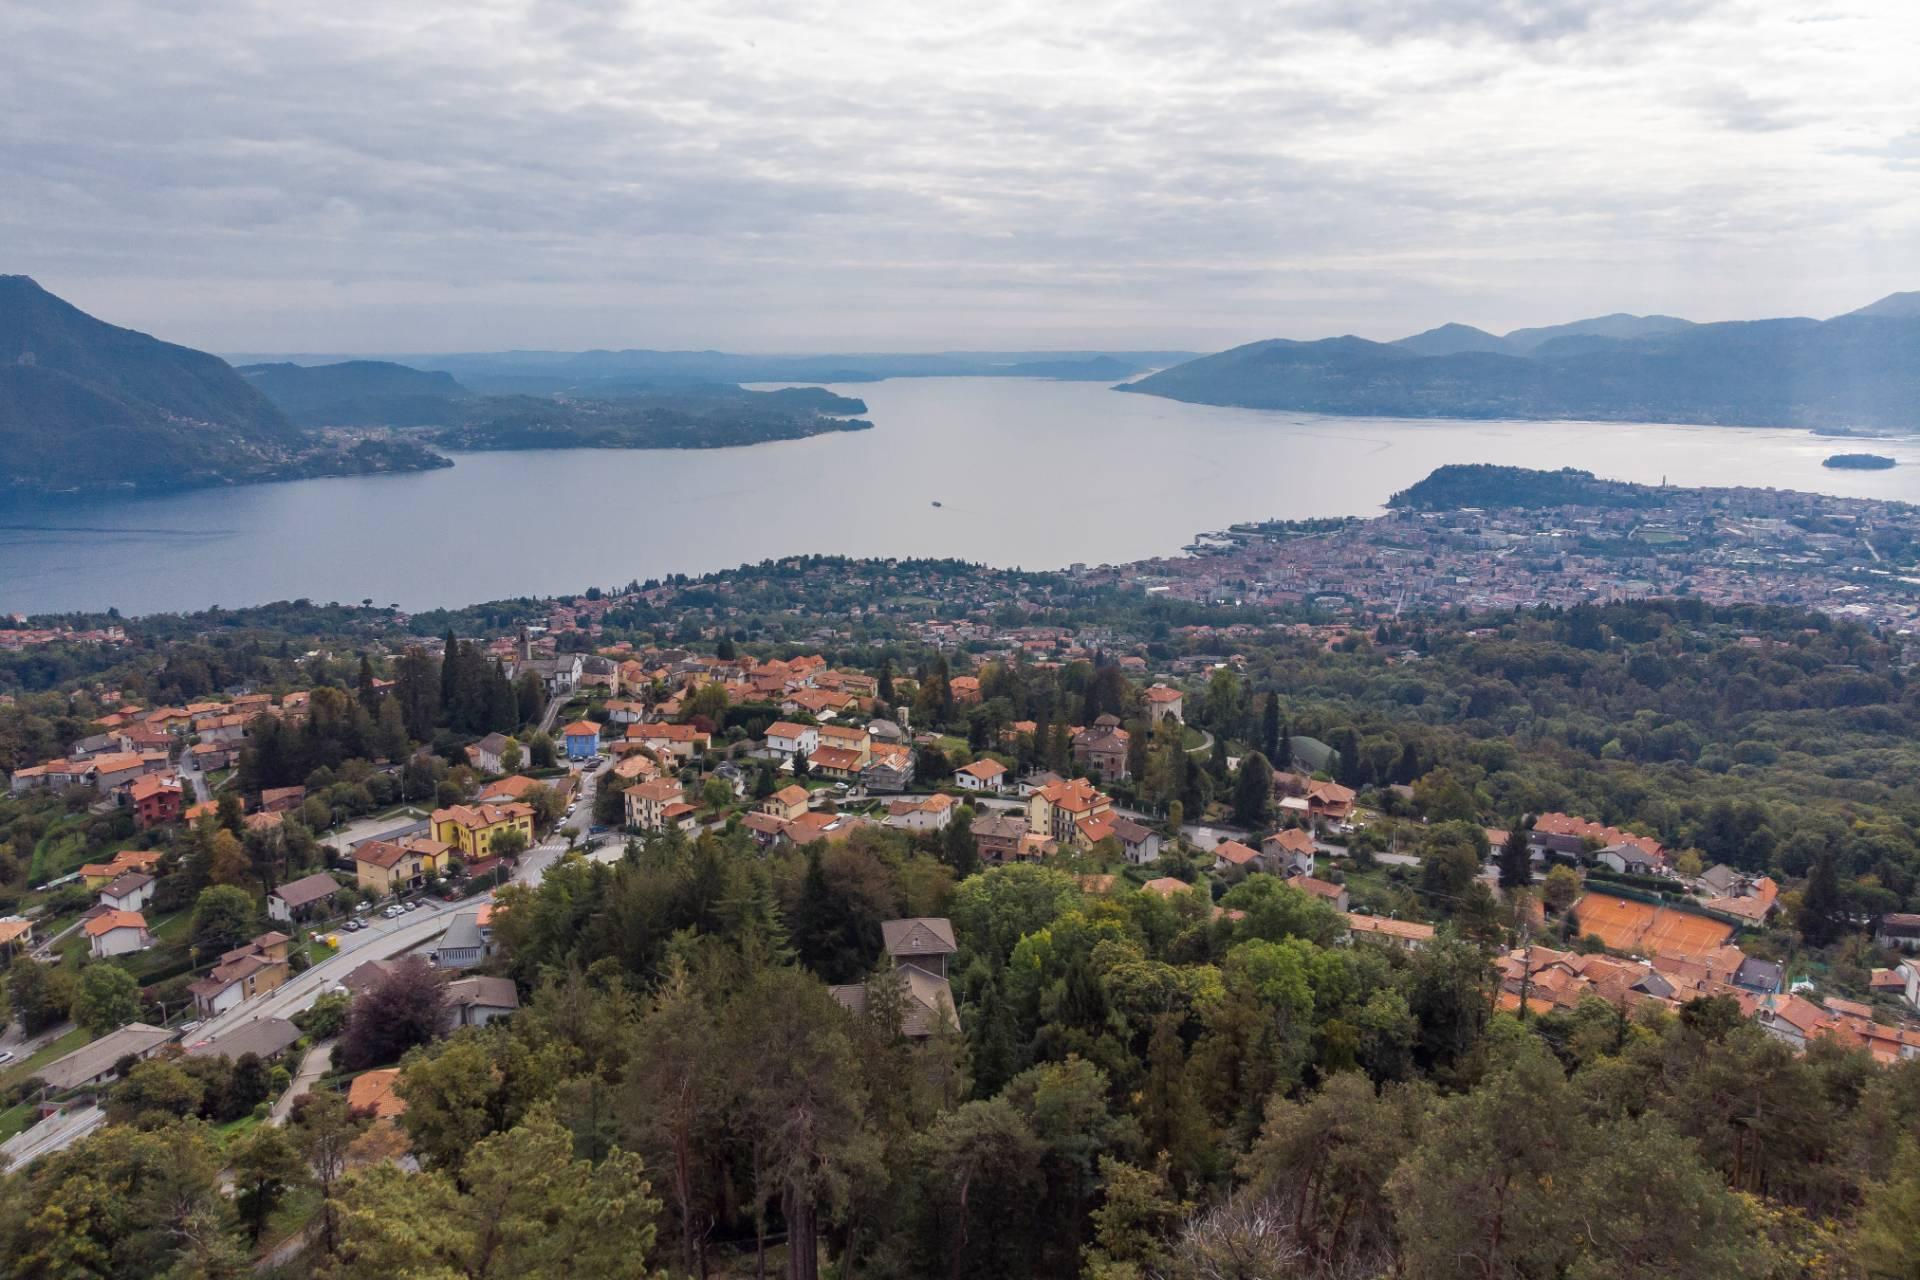 Detached Villa in the hilly area of Verbania with wonderful lake view - 6